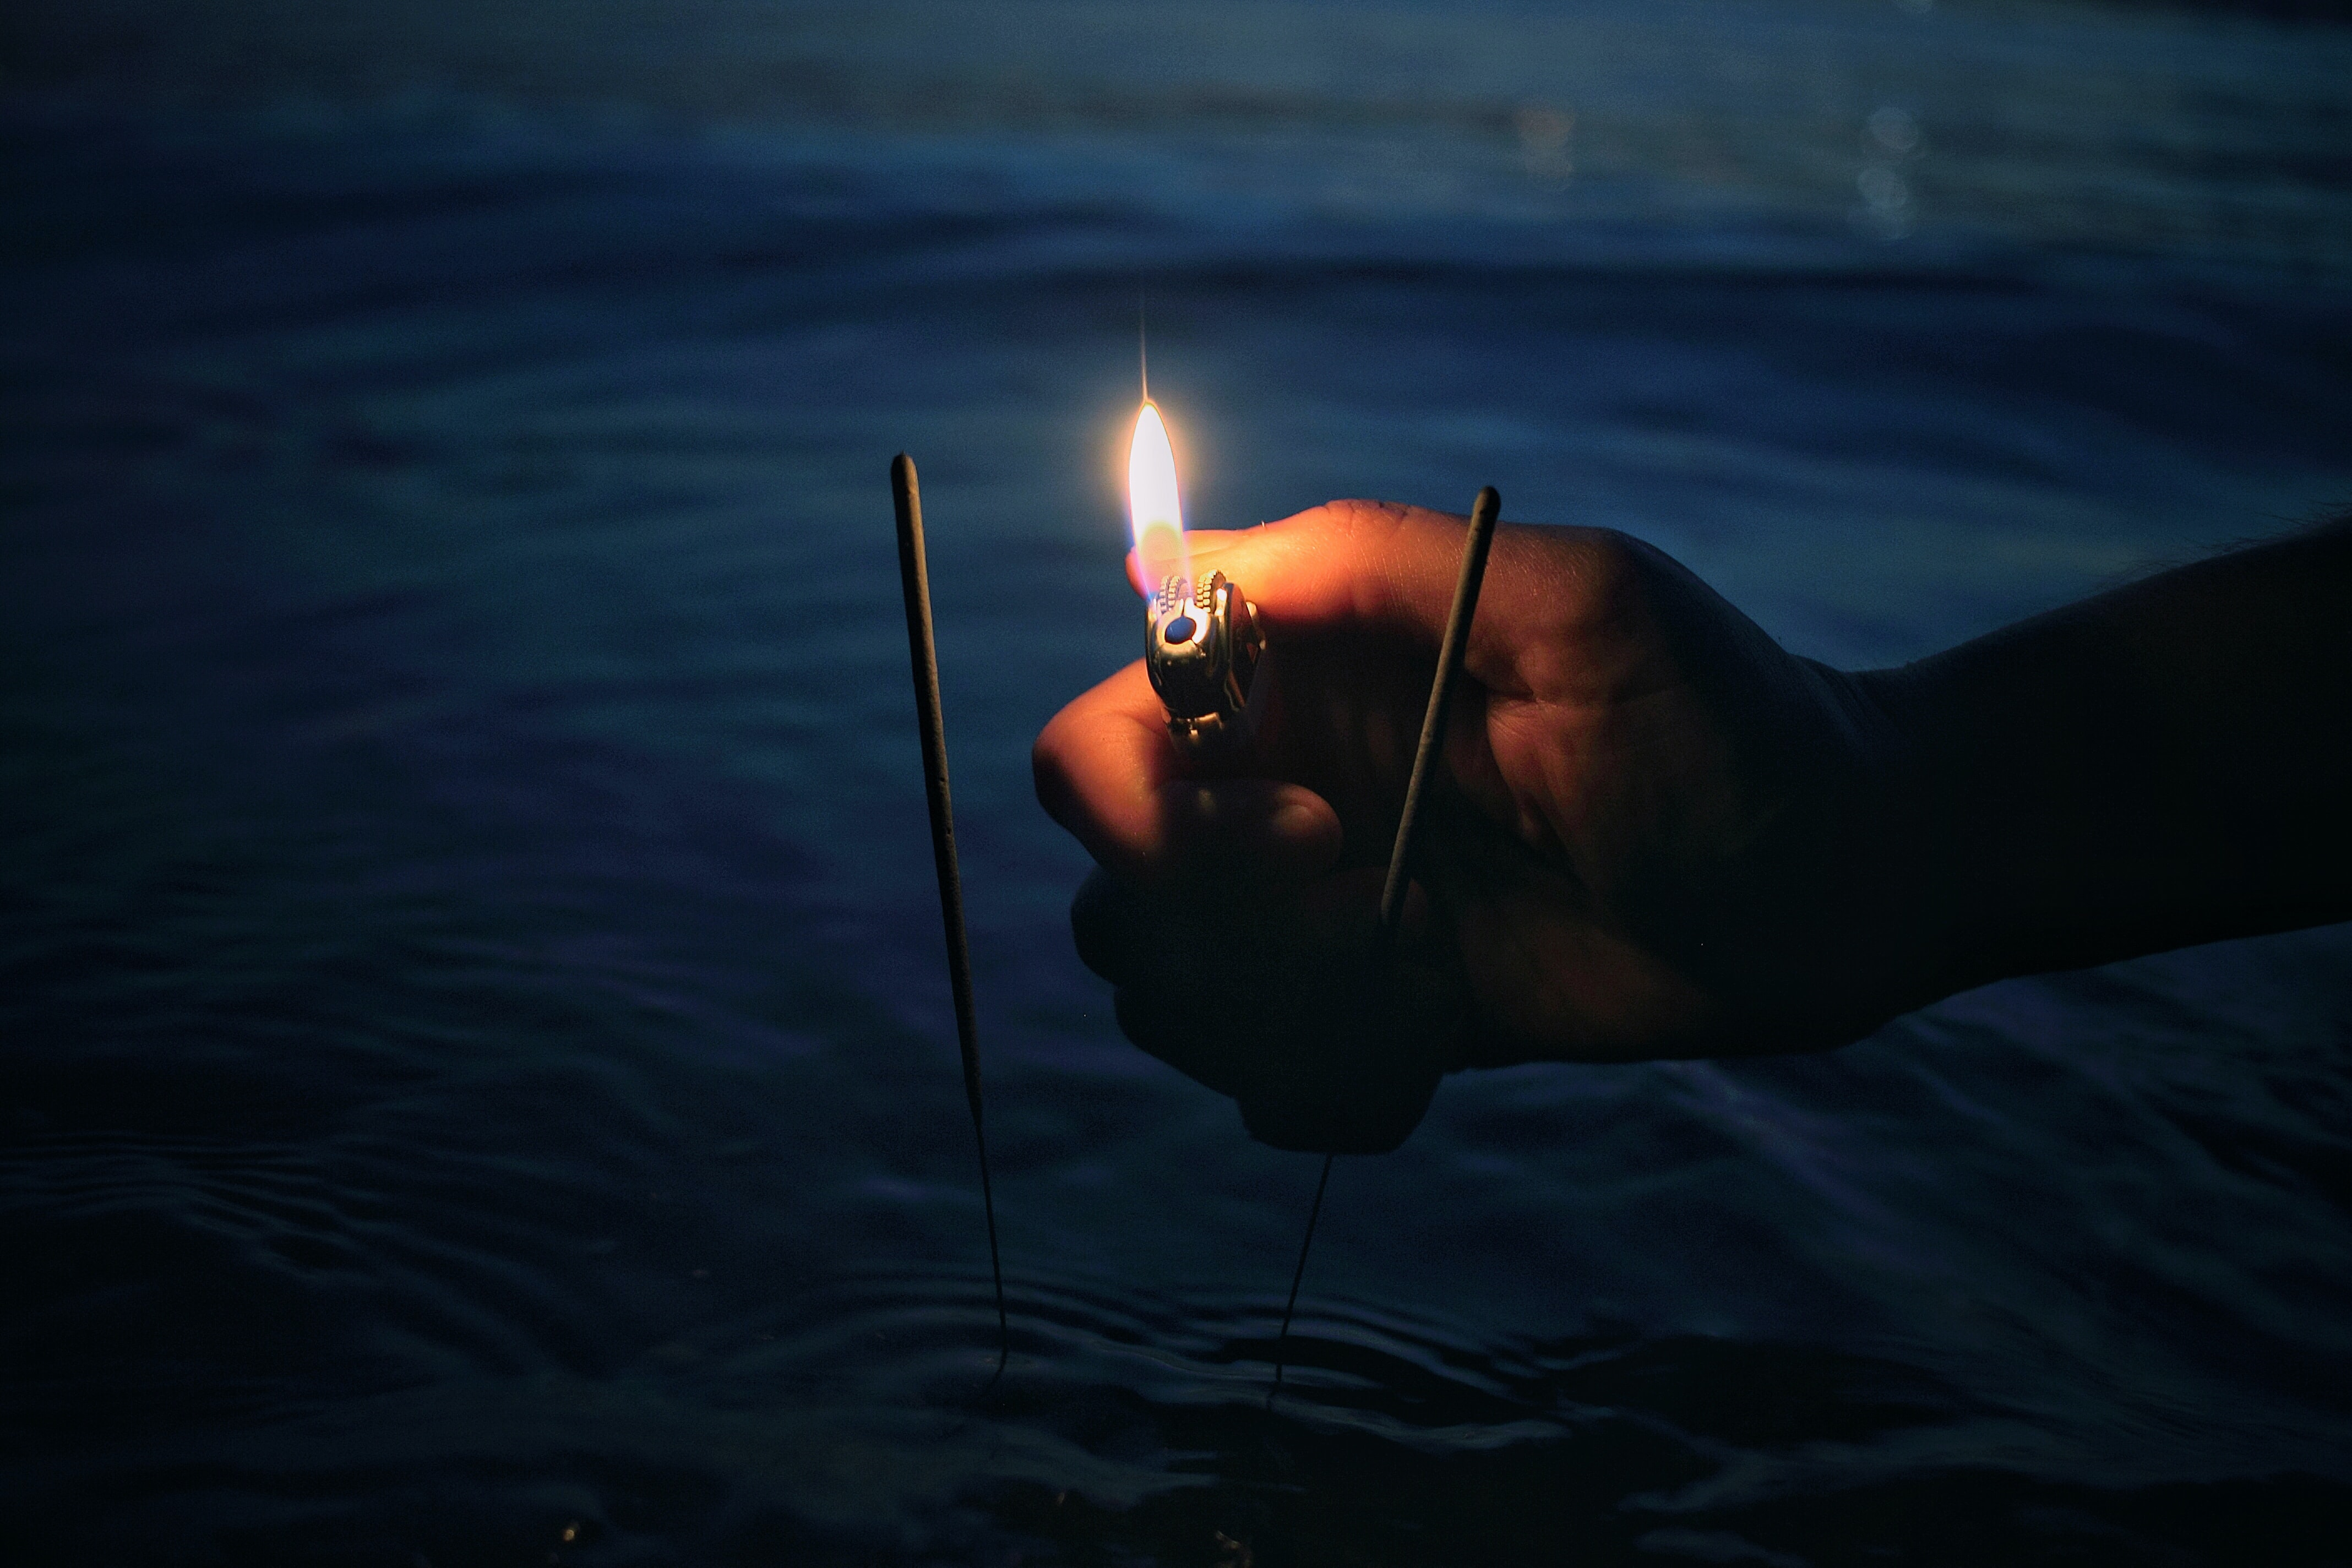 person lighting incense